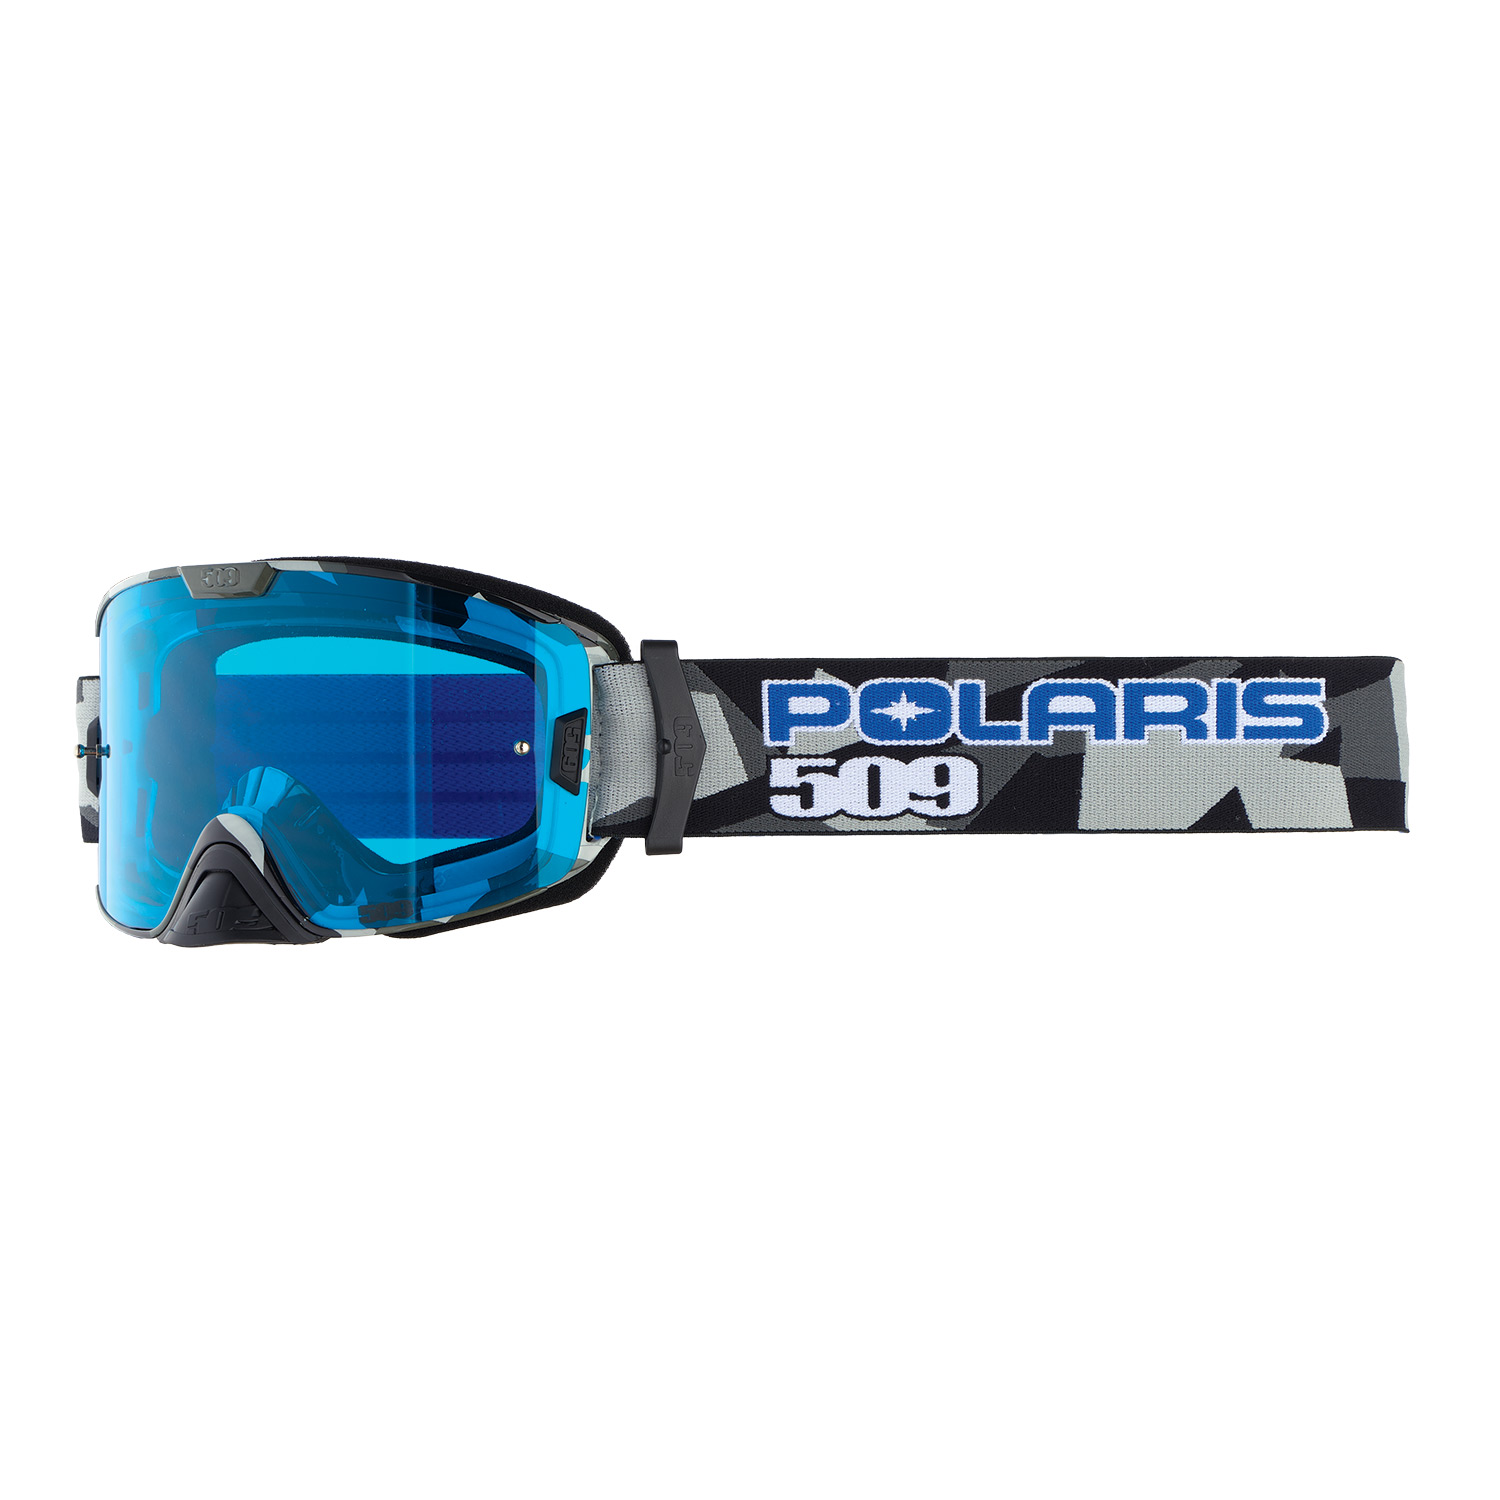 509® Kingpin Dirt Adult Goggle with Anti-Fog Coating, Blue